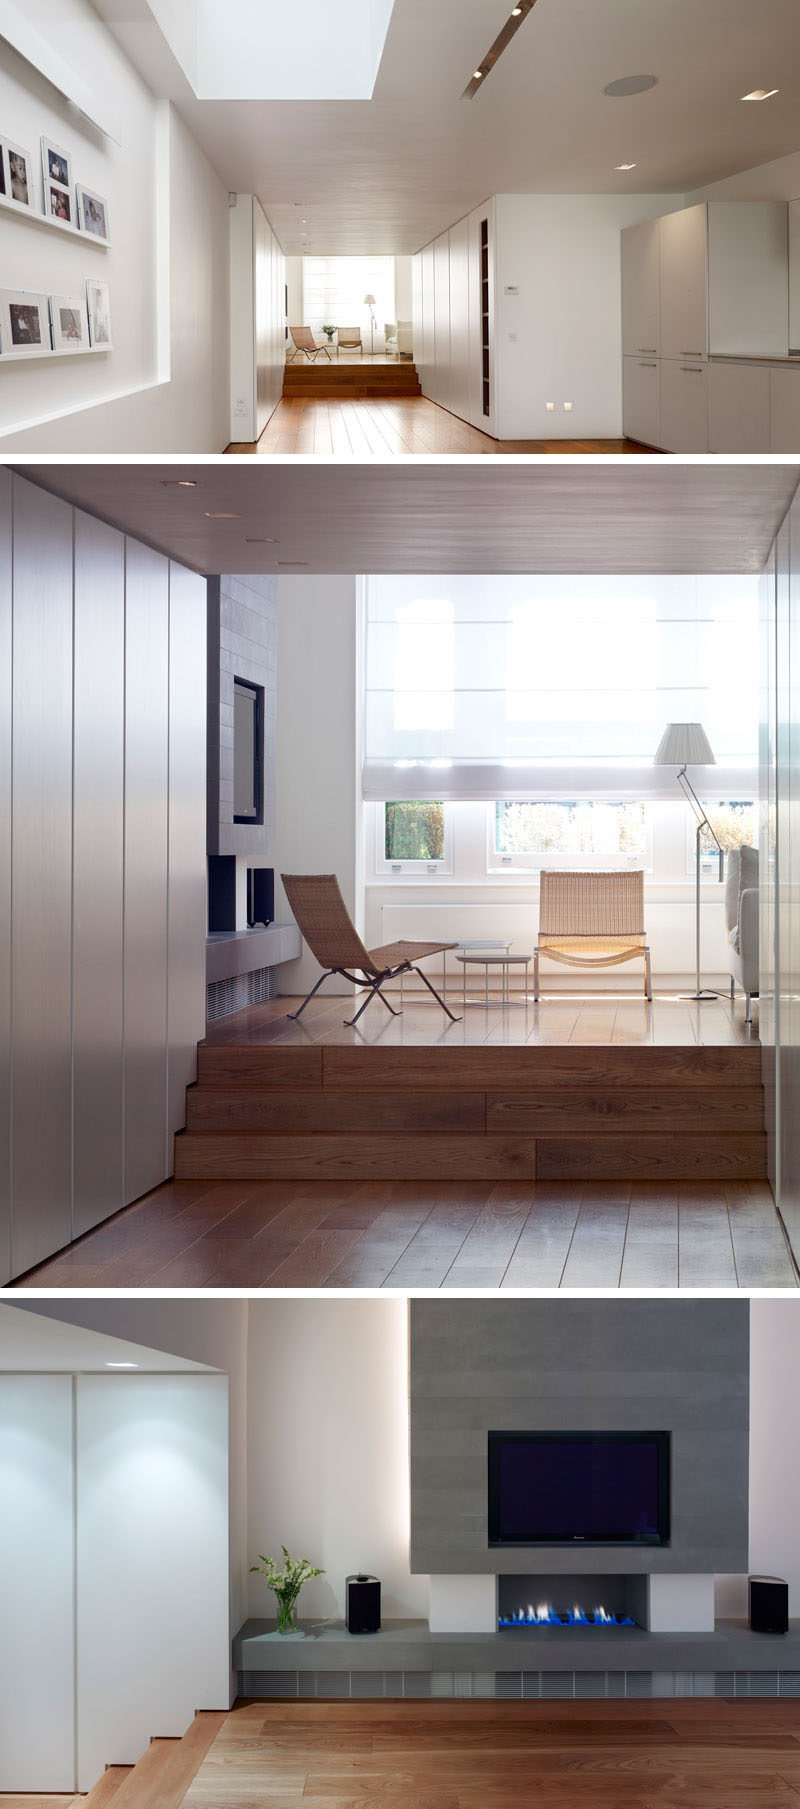 thompson baroni architects designed a contemporary update for